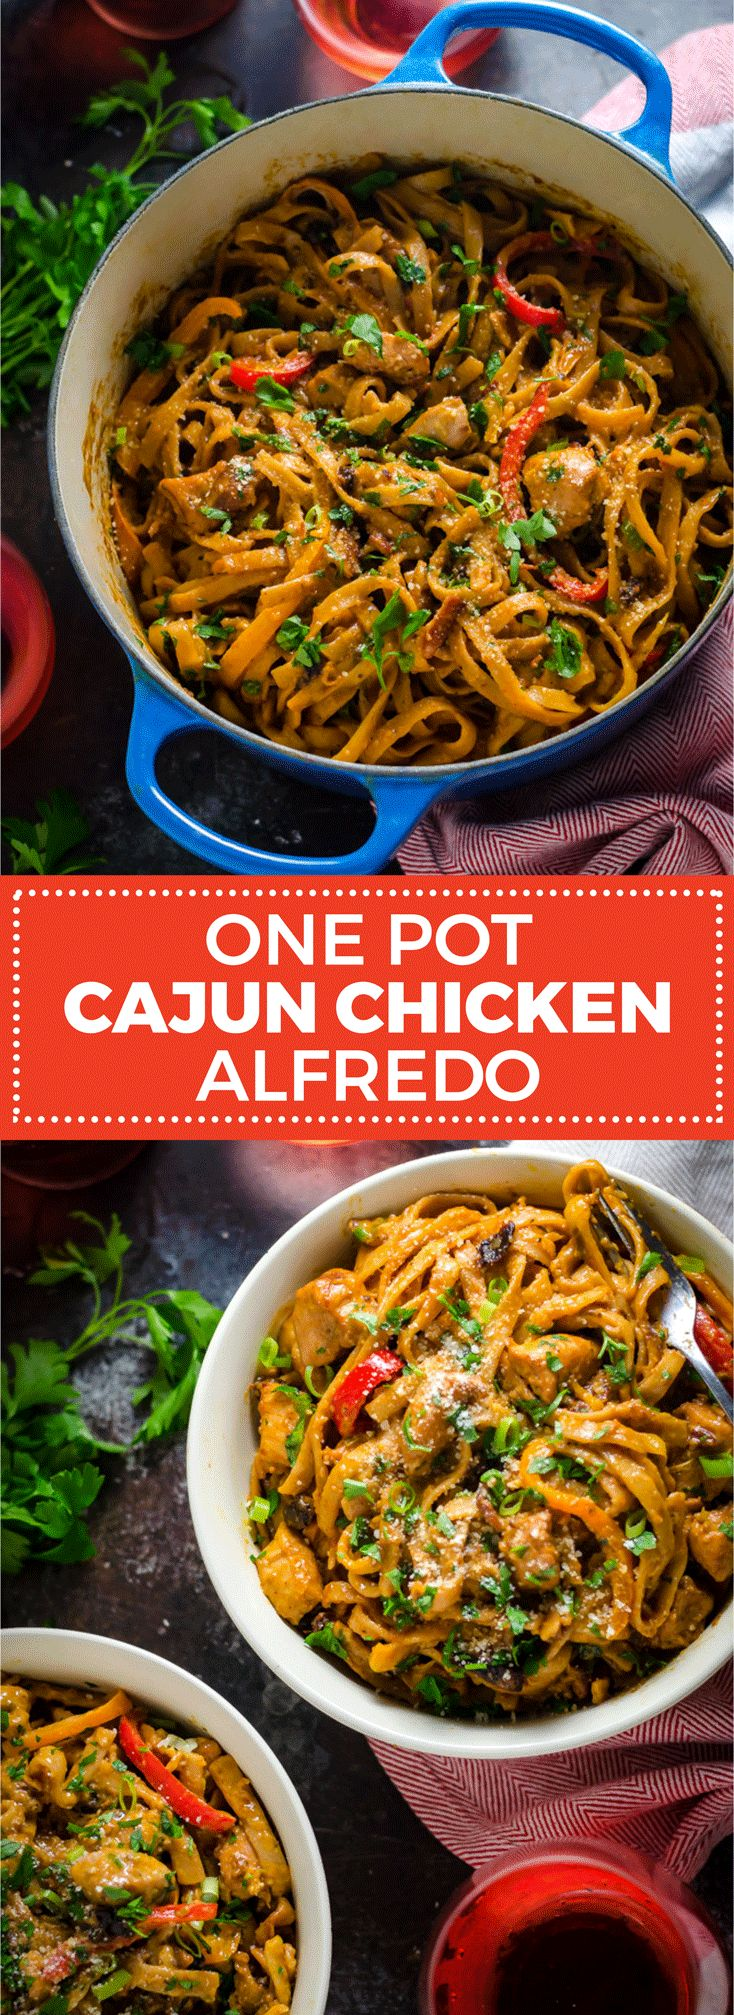 One Pot Cajun Chicken Alfredo. This creamy, flavorful, weeknight pasta dinner takes less than an hour to make, and is loaded up with chicken, bacon, bell peppers, and more! Pair it with Sutter Home White Zinfandel for a little #SweetOnSpice | #ad |  hostthetoast.com